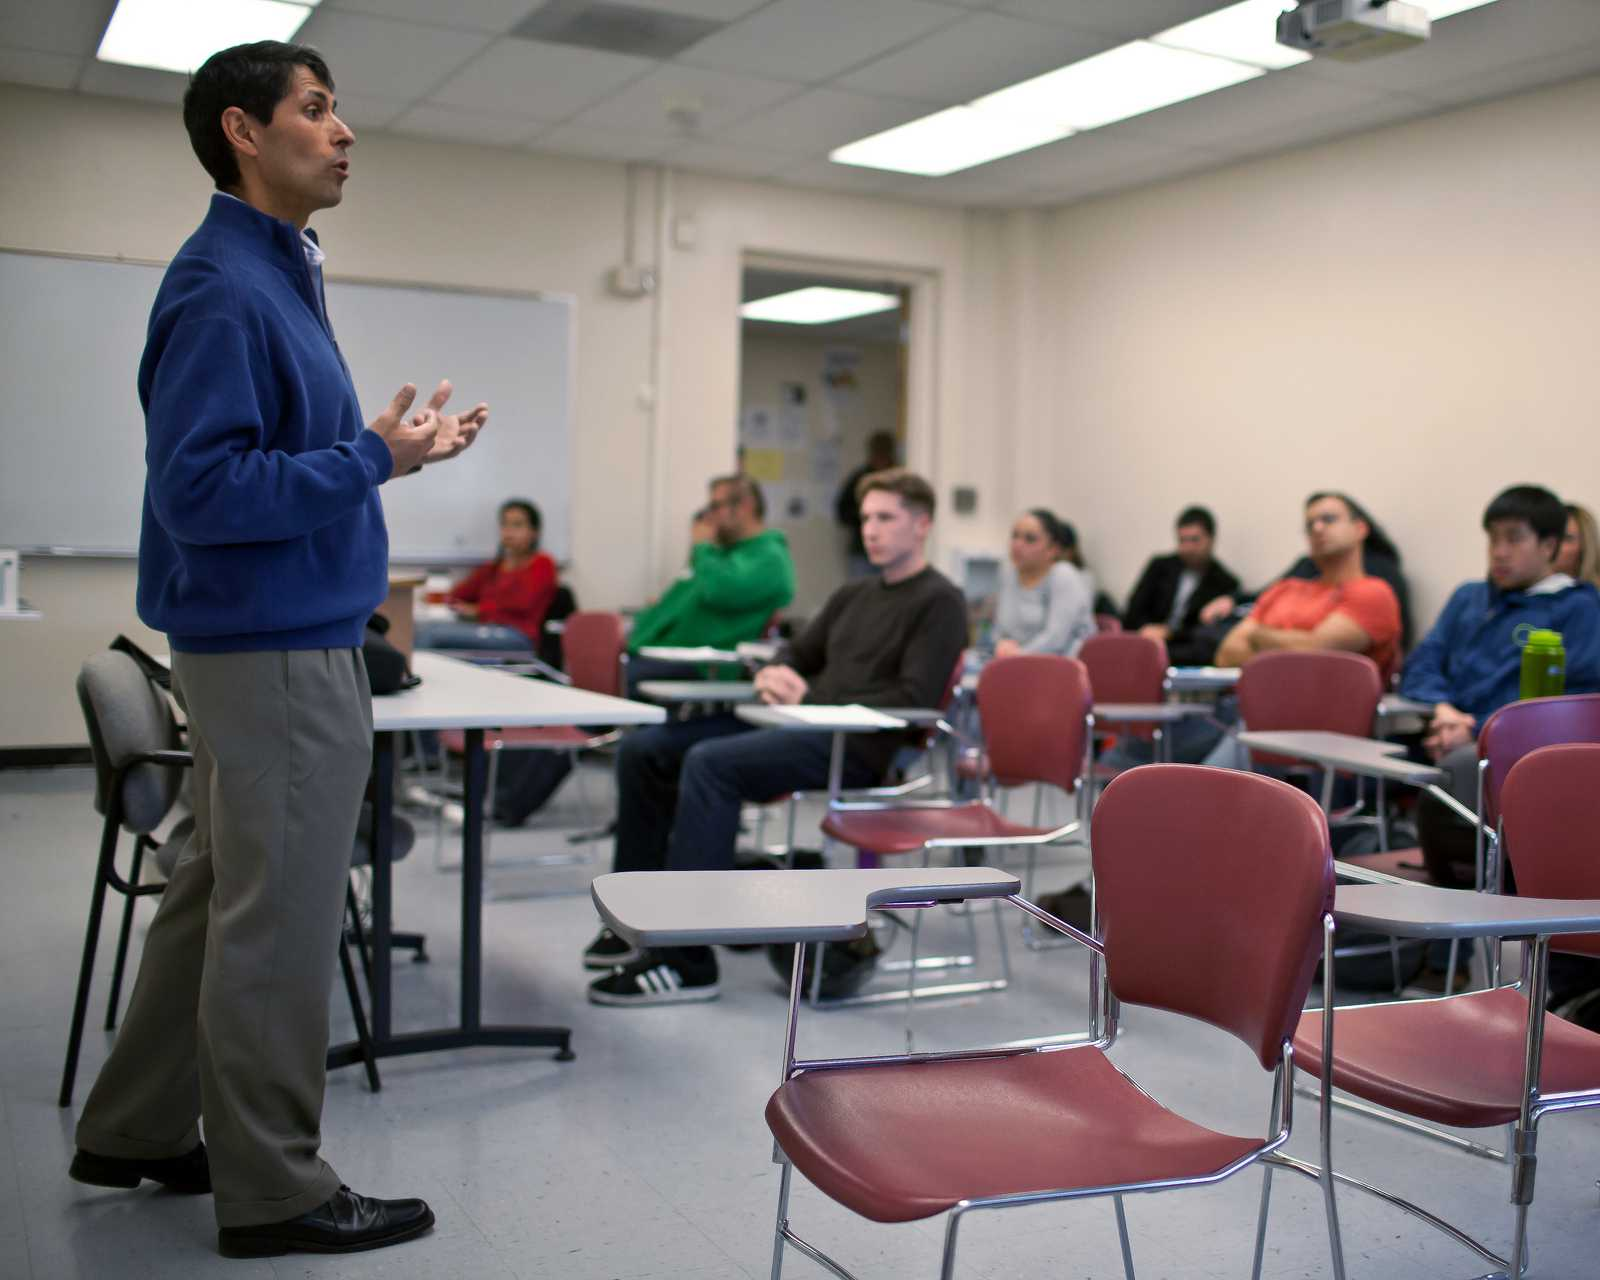 Michael Santos speaks in front of Kelly Carroll's criminal law class at SF State on Wednesday, Nov. 6, 2013. Santos started teaching at SF State in August, 2013 after he was released from a 26-year prison sentence where he earned his degree, and got married. Photo taken by Dariel Medina / Xpress